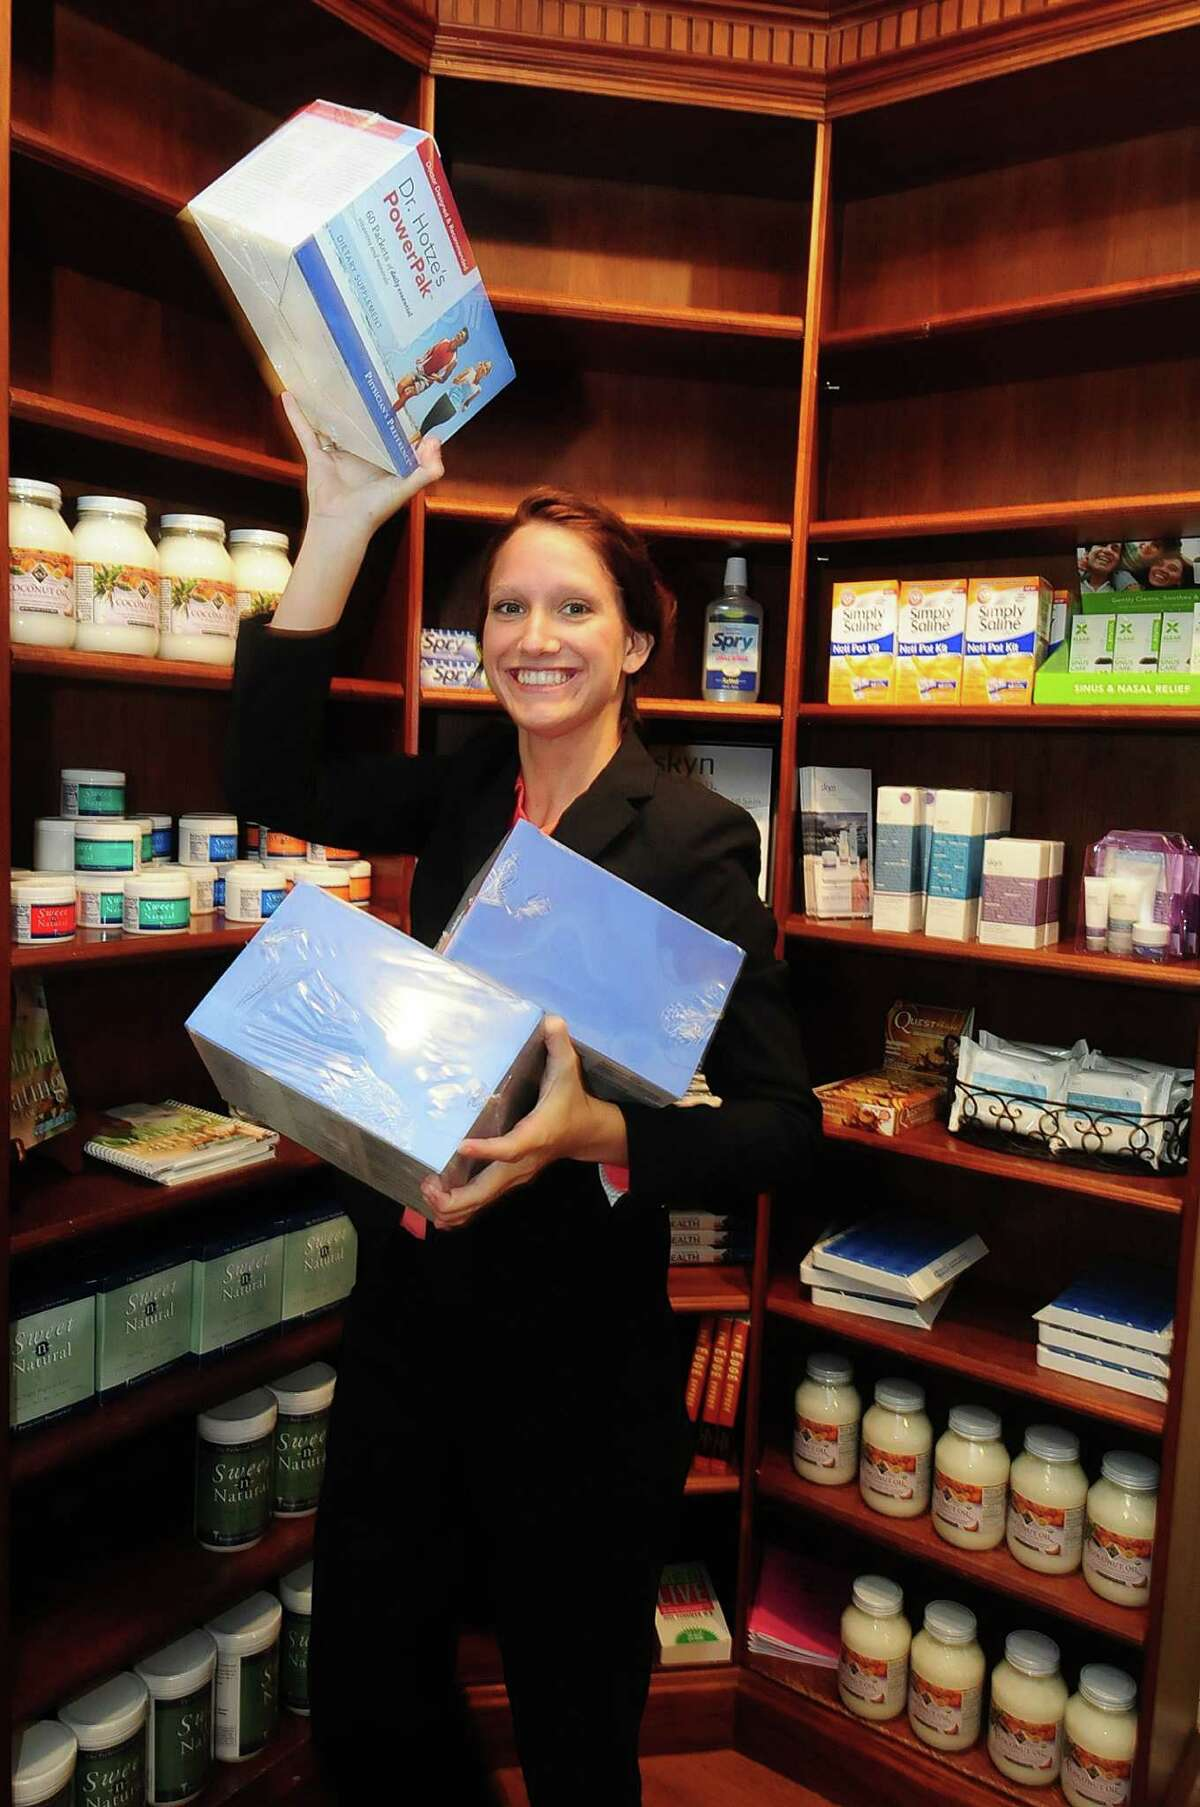 Amy McCance (Digital Marketing Specialist) with some of the product available at Hotze Enterprises in Katy Thursday 9/26/13.